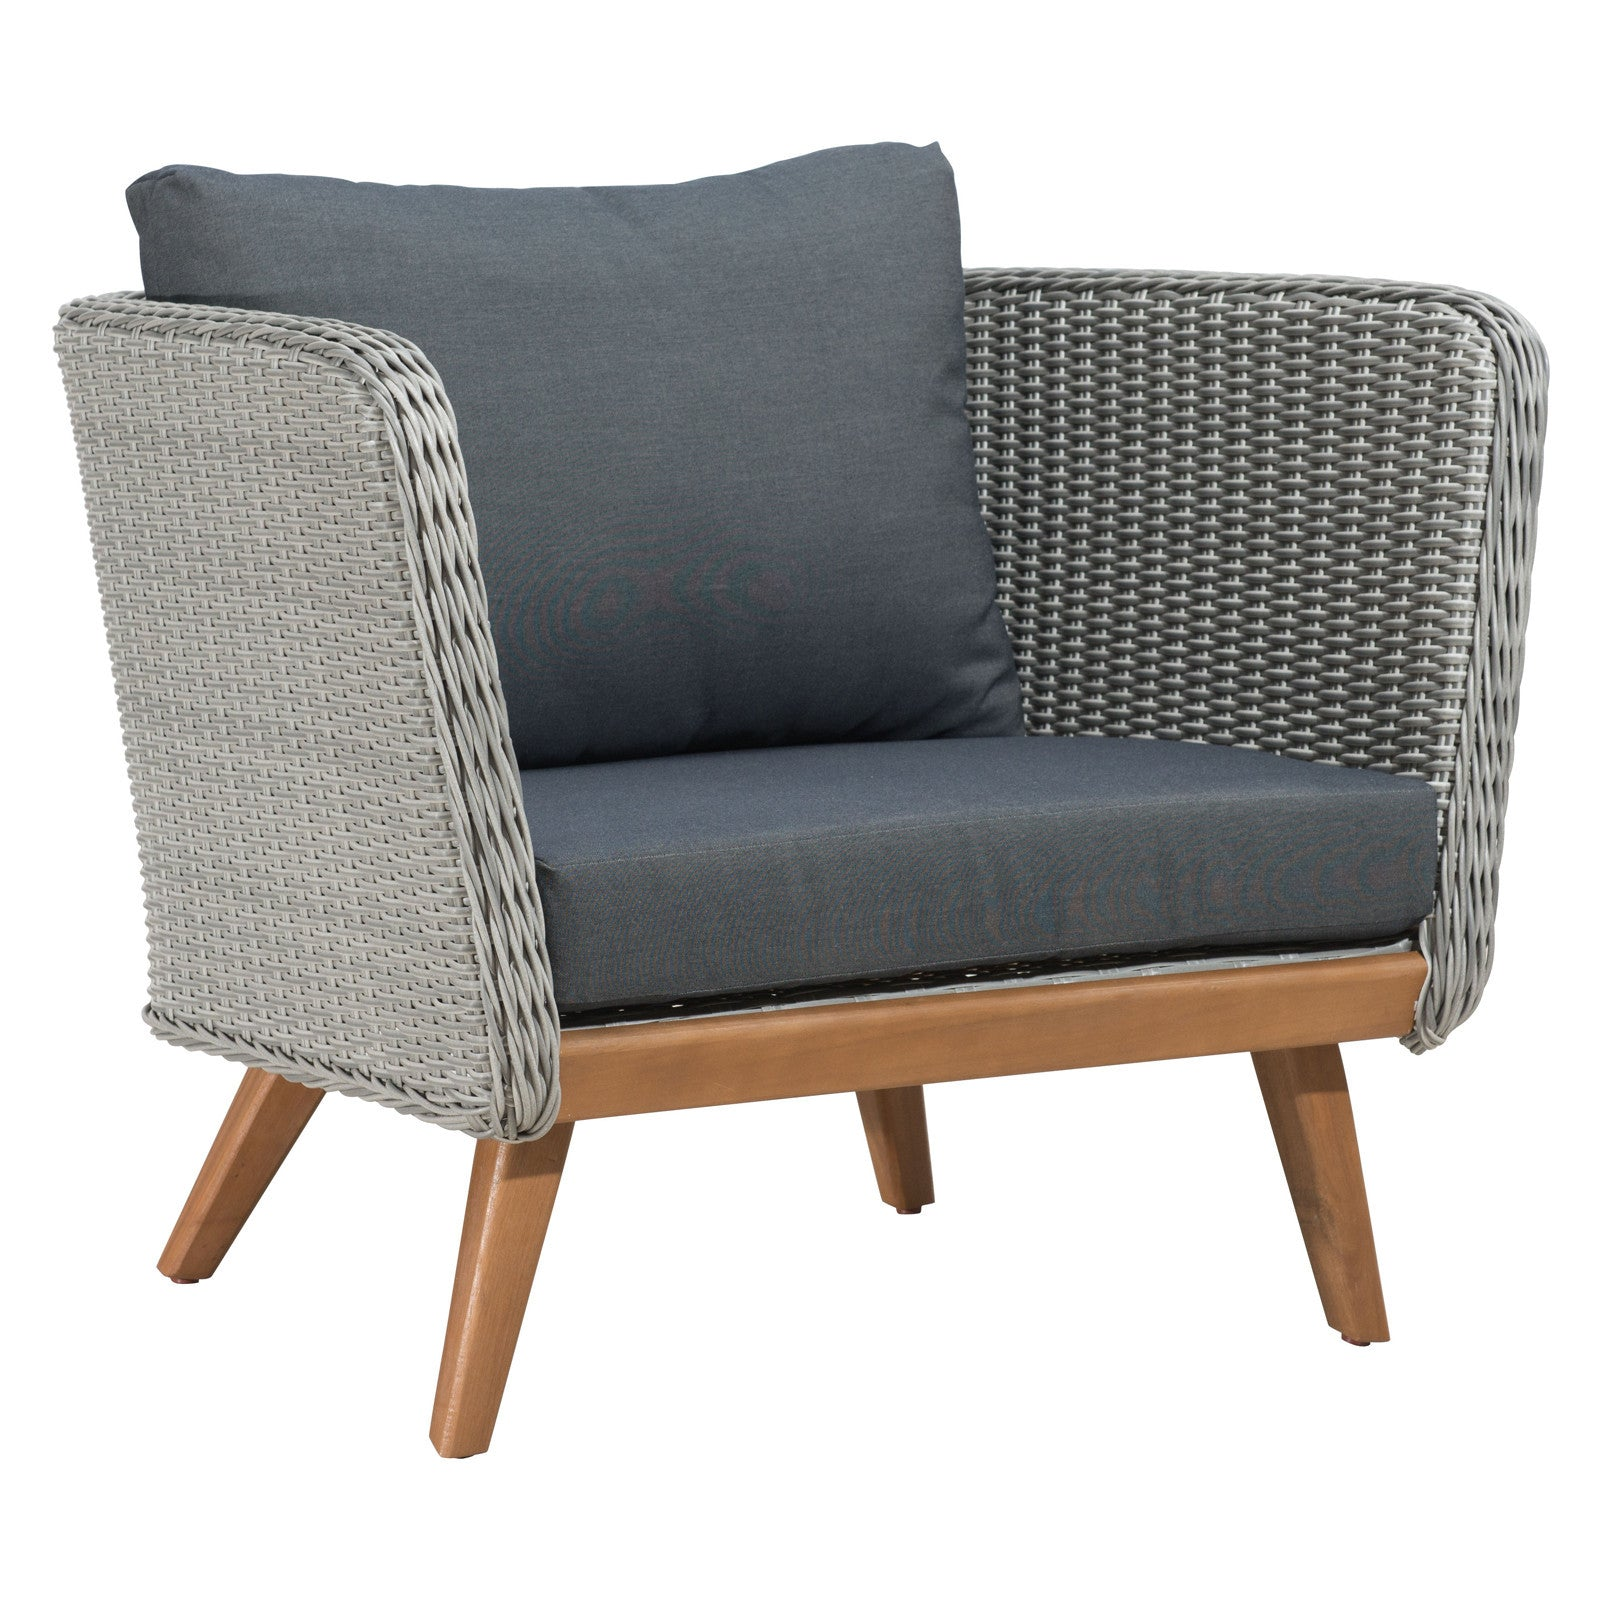 Sycamore Cove Outdoor Arm Chair Set of 2 – Apt2B